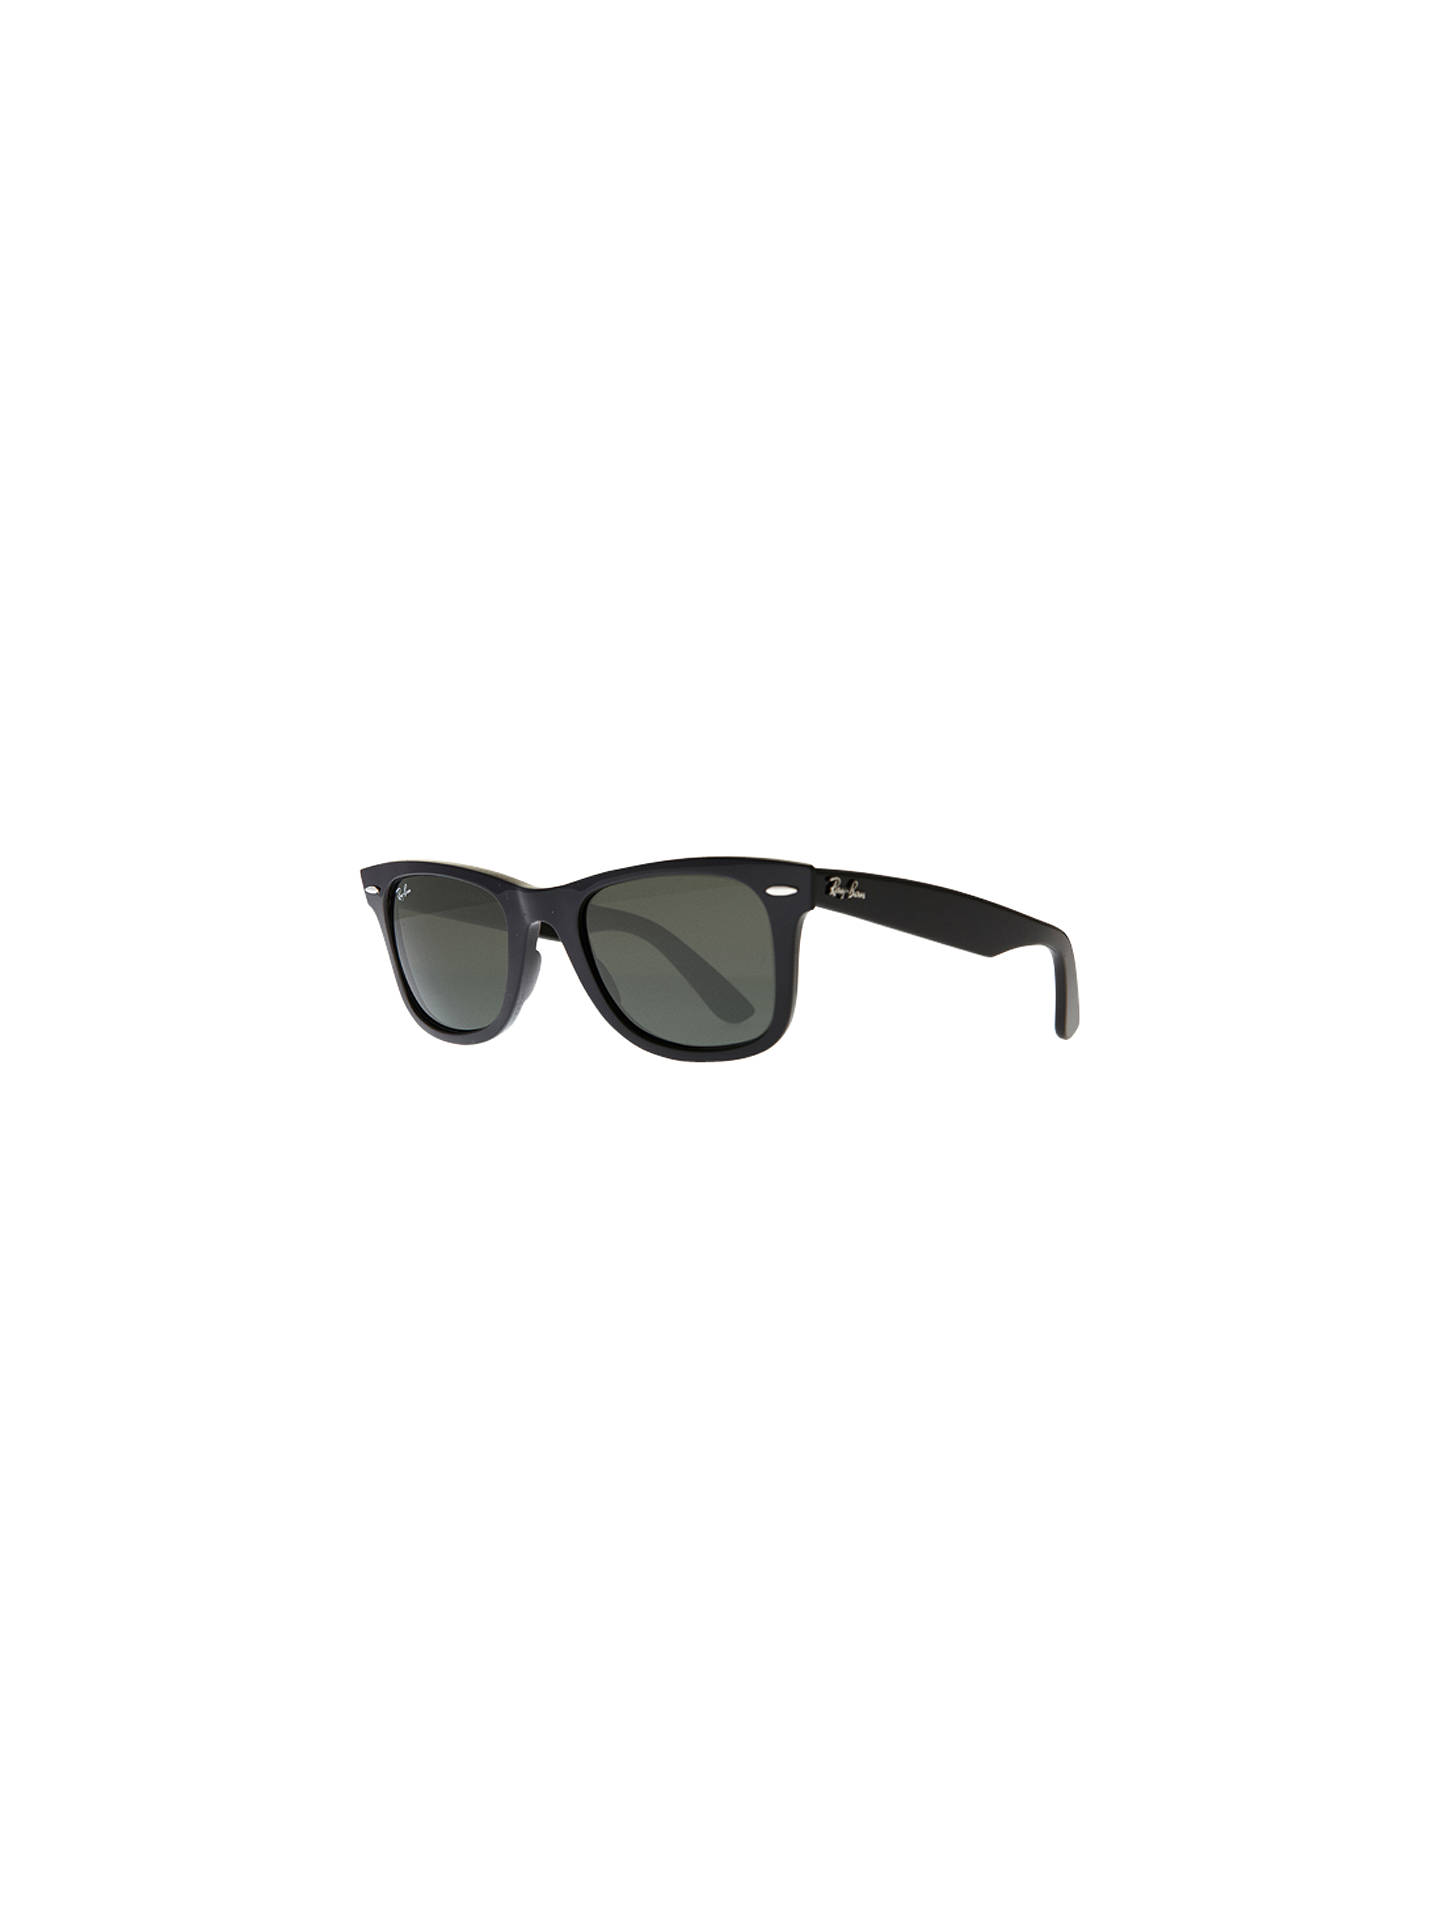 803ace5eaf02 Buy Ray-Ban RB2140 Original Wayfarer Sunglasses